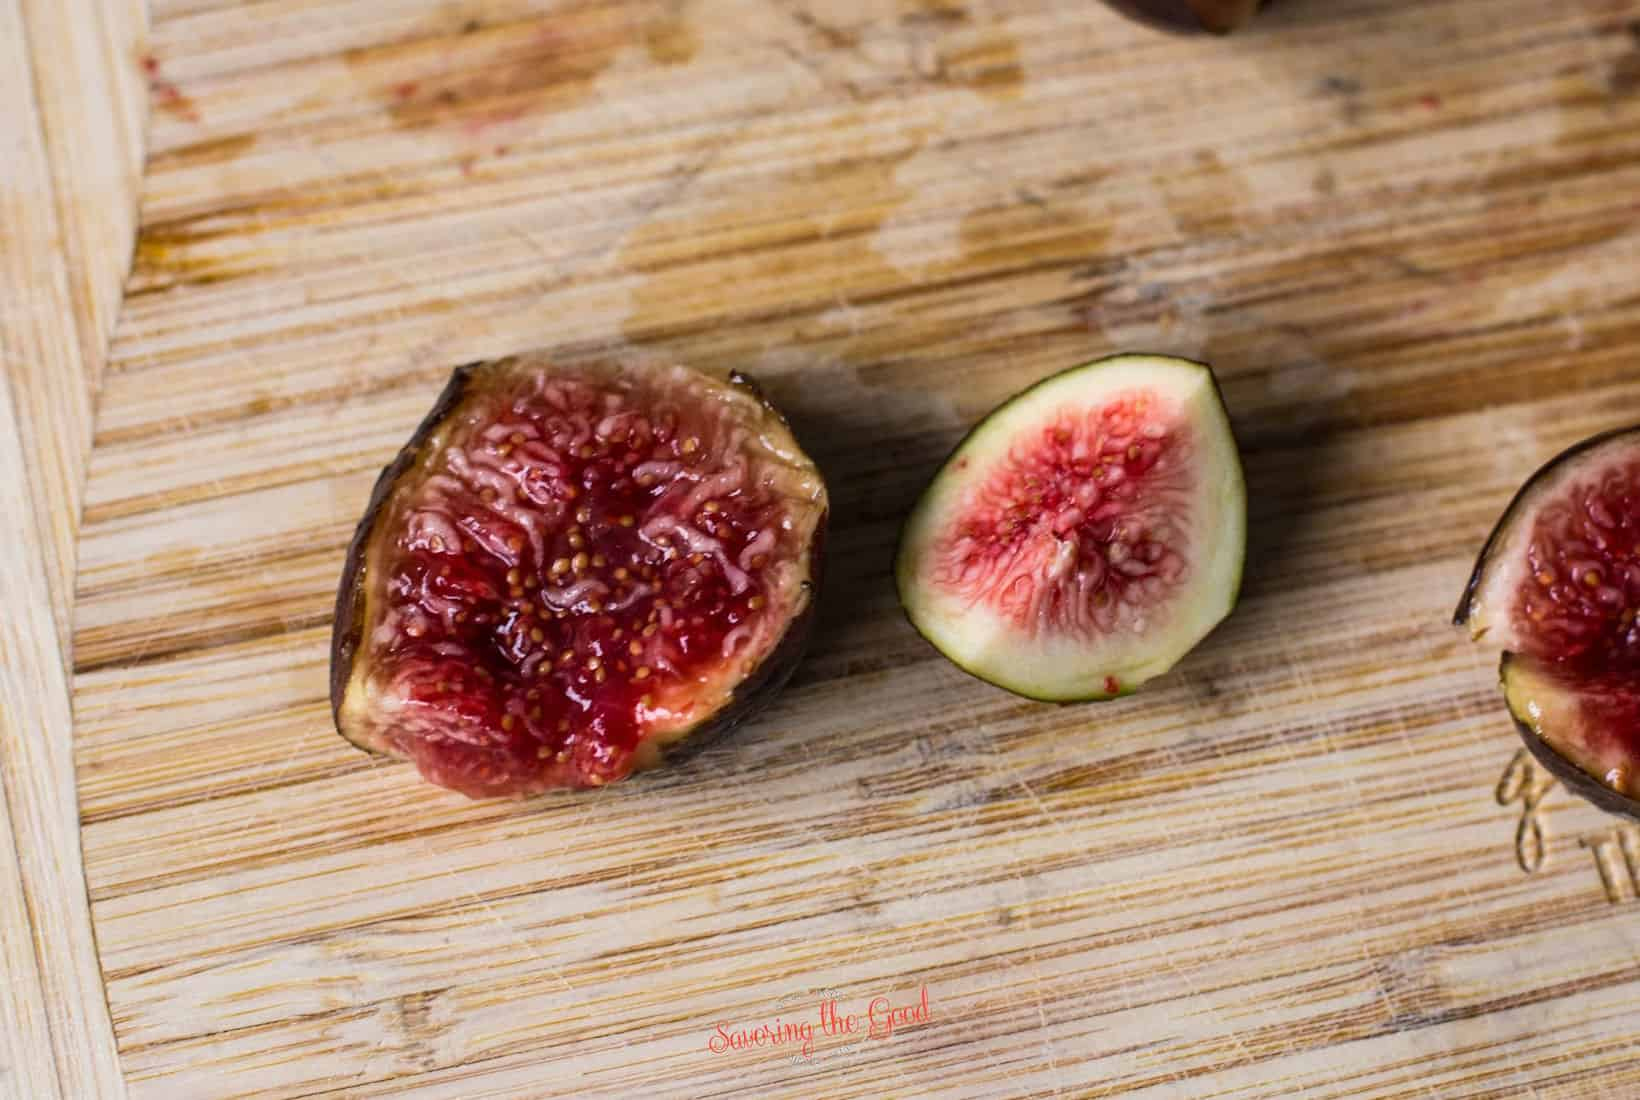 ripe fig open next to a less ripe fig cut open